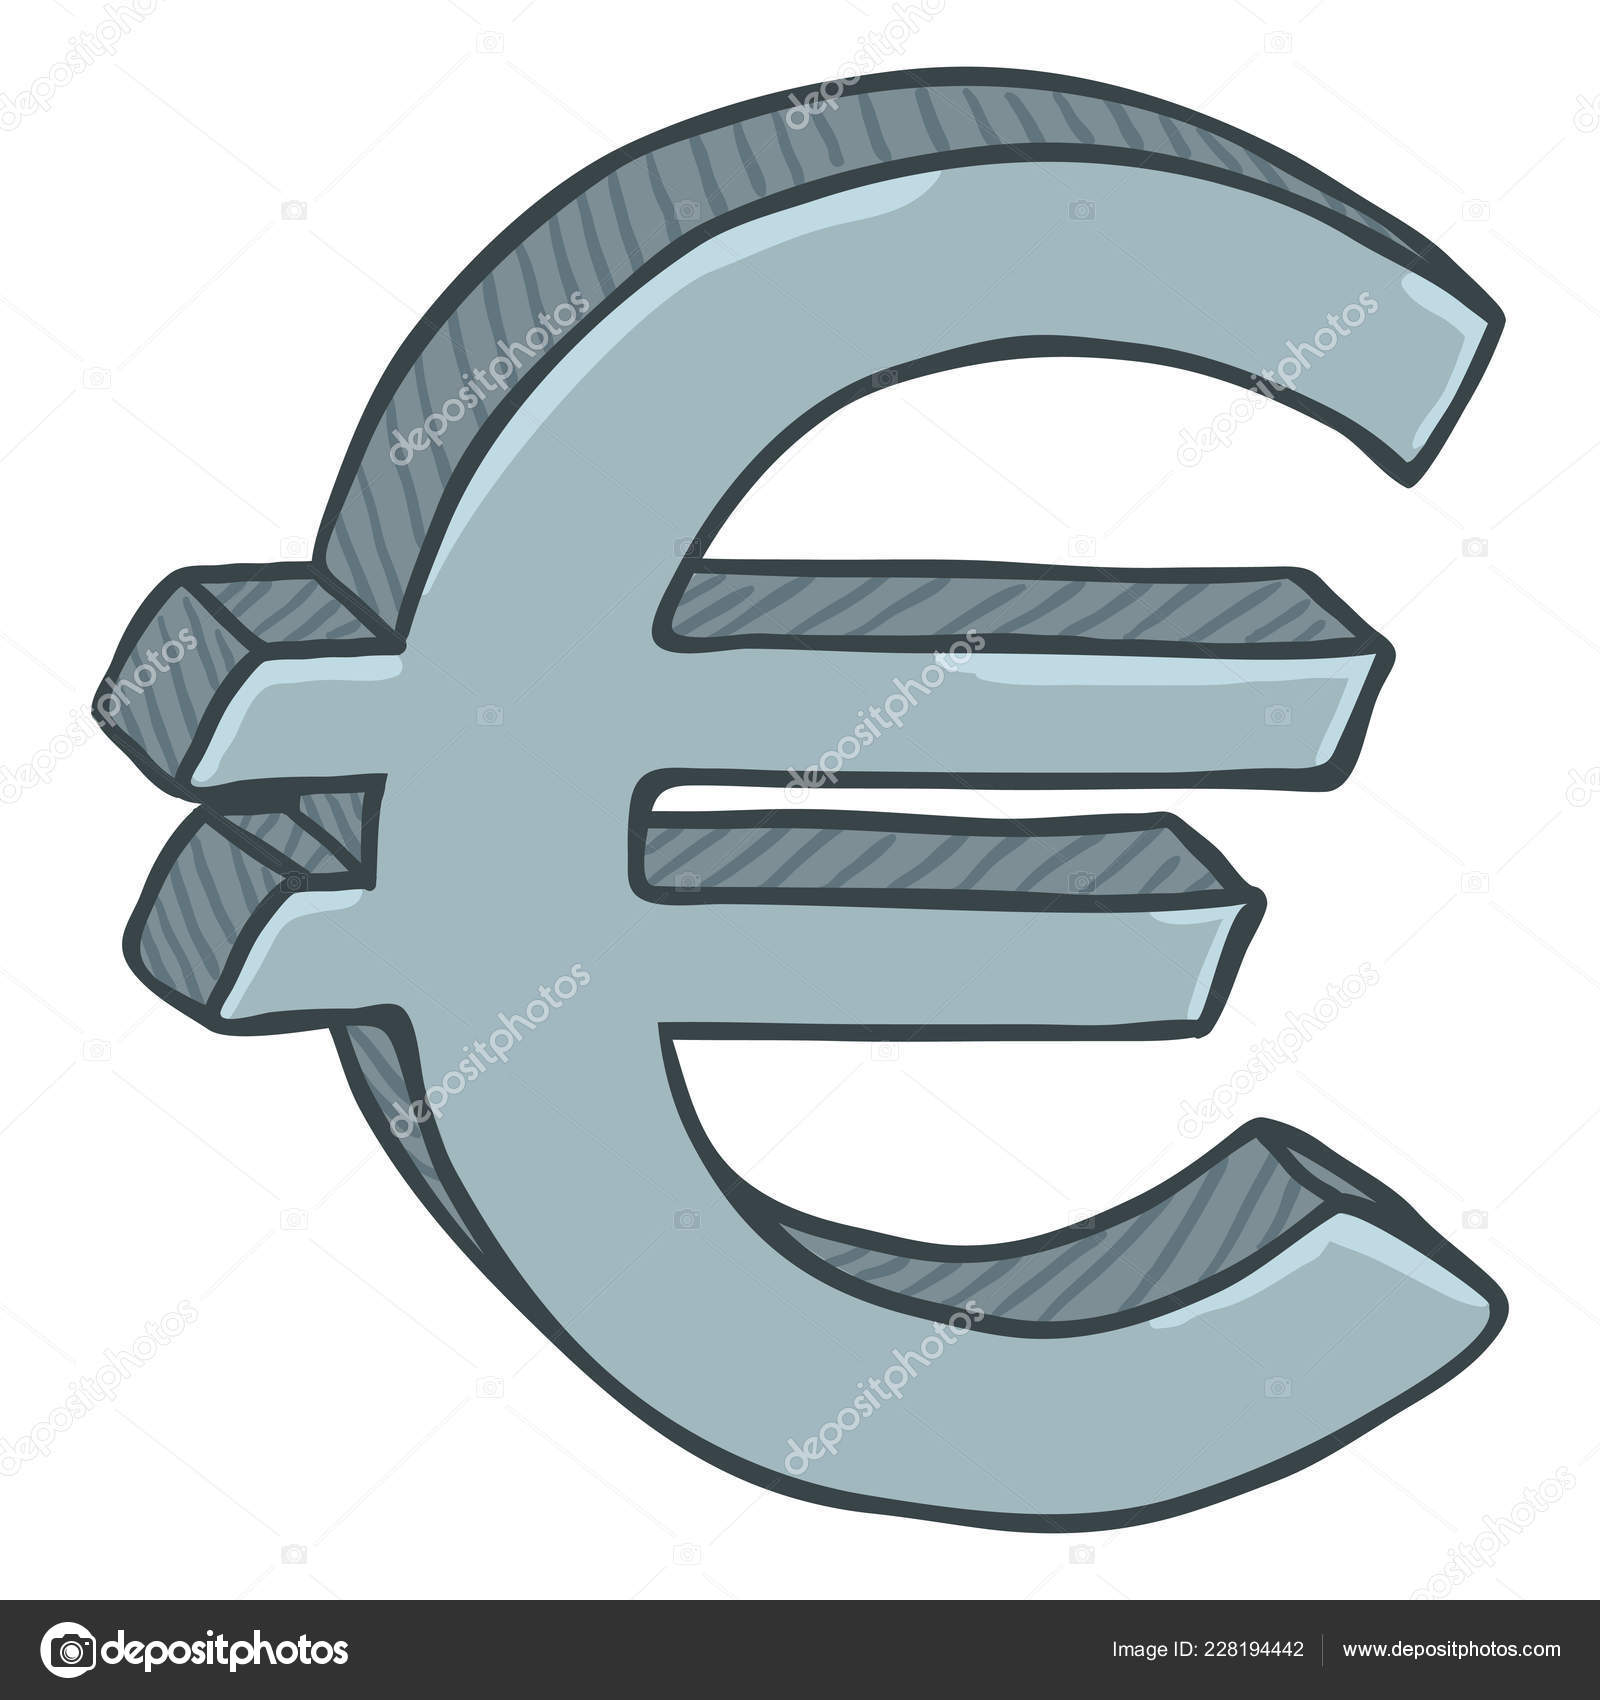 Cartoon Silver Currency Sign Euro Money Symbol Isolated White